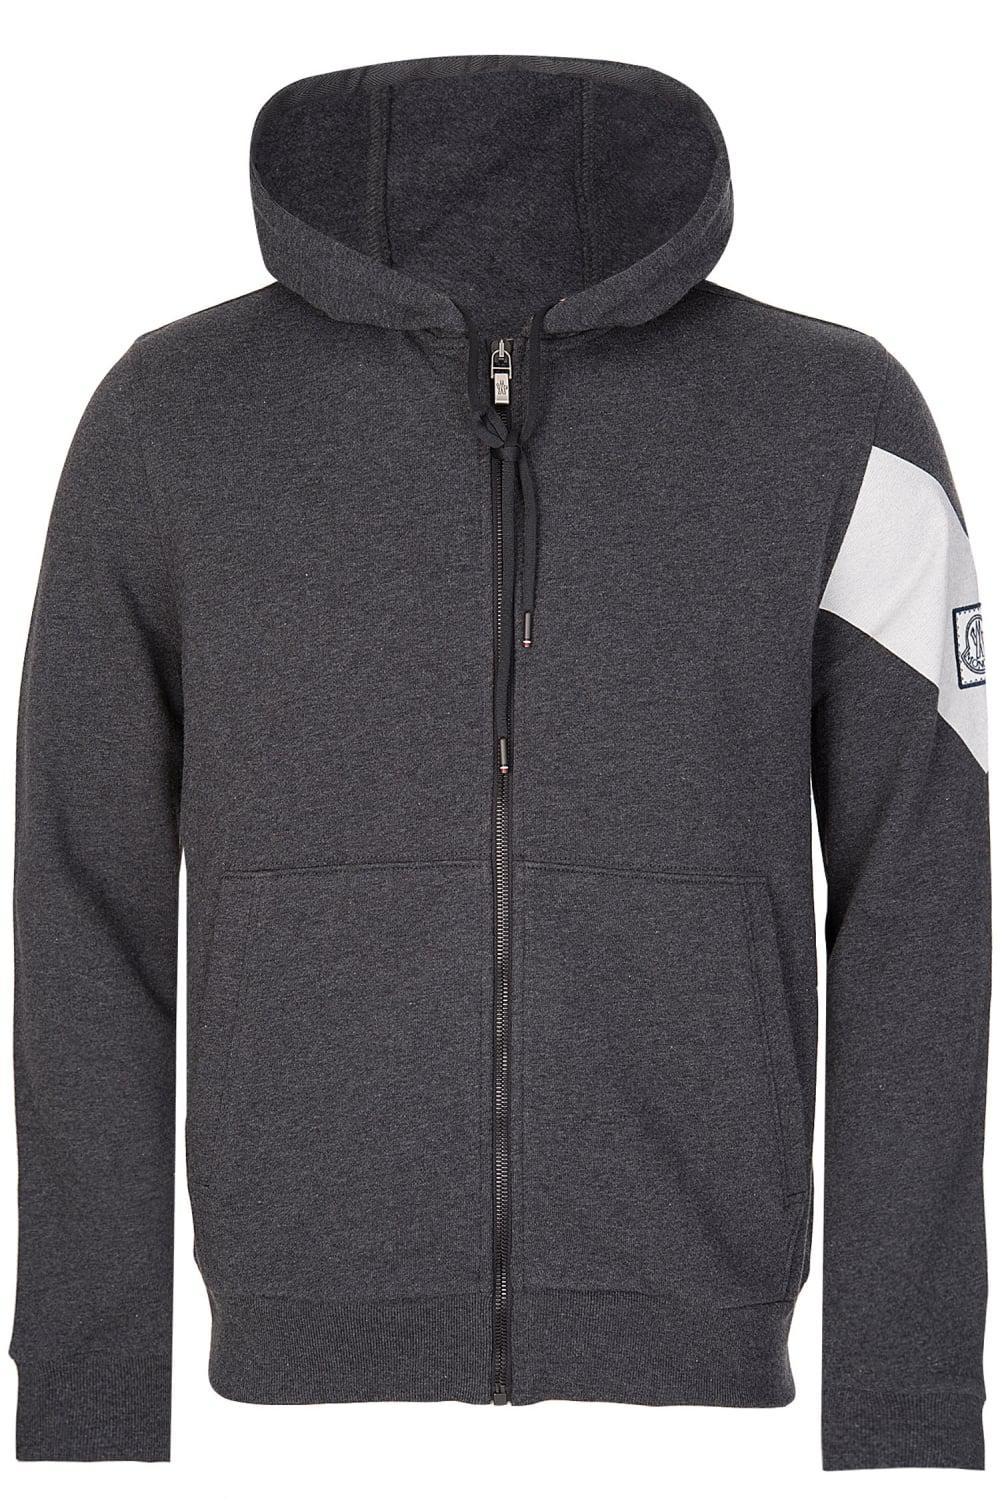 03c3e7210424b Moncler Men's Grey Angle Sleeve Stripe Hoodie in Gray for Men - Lyst